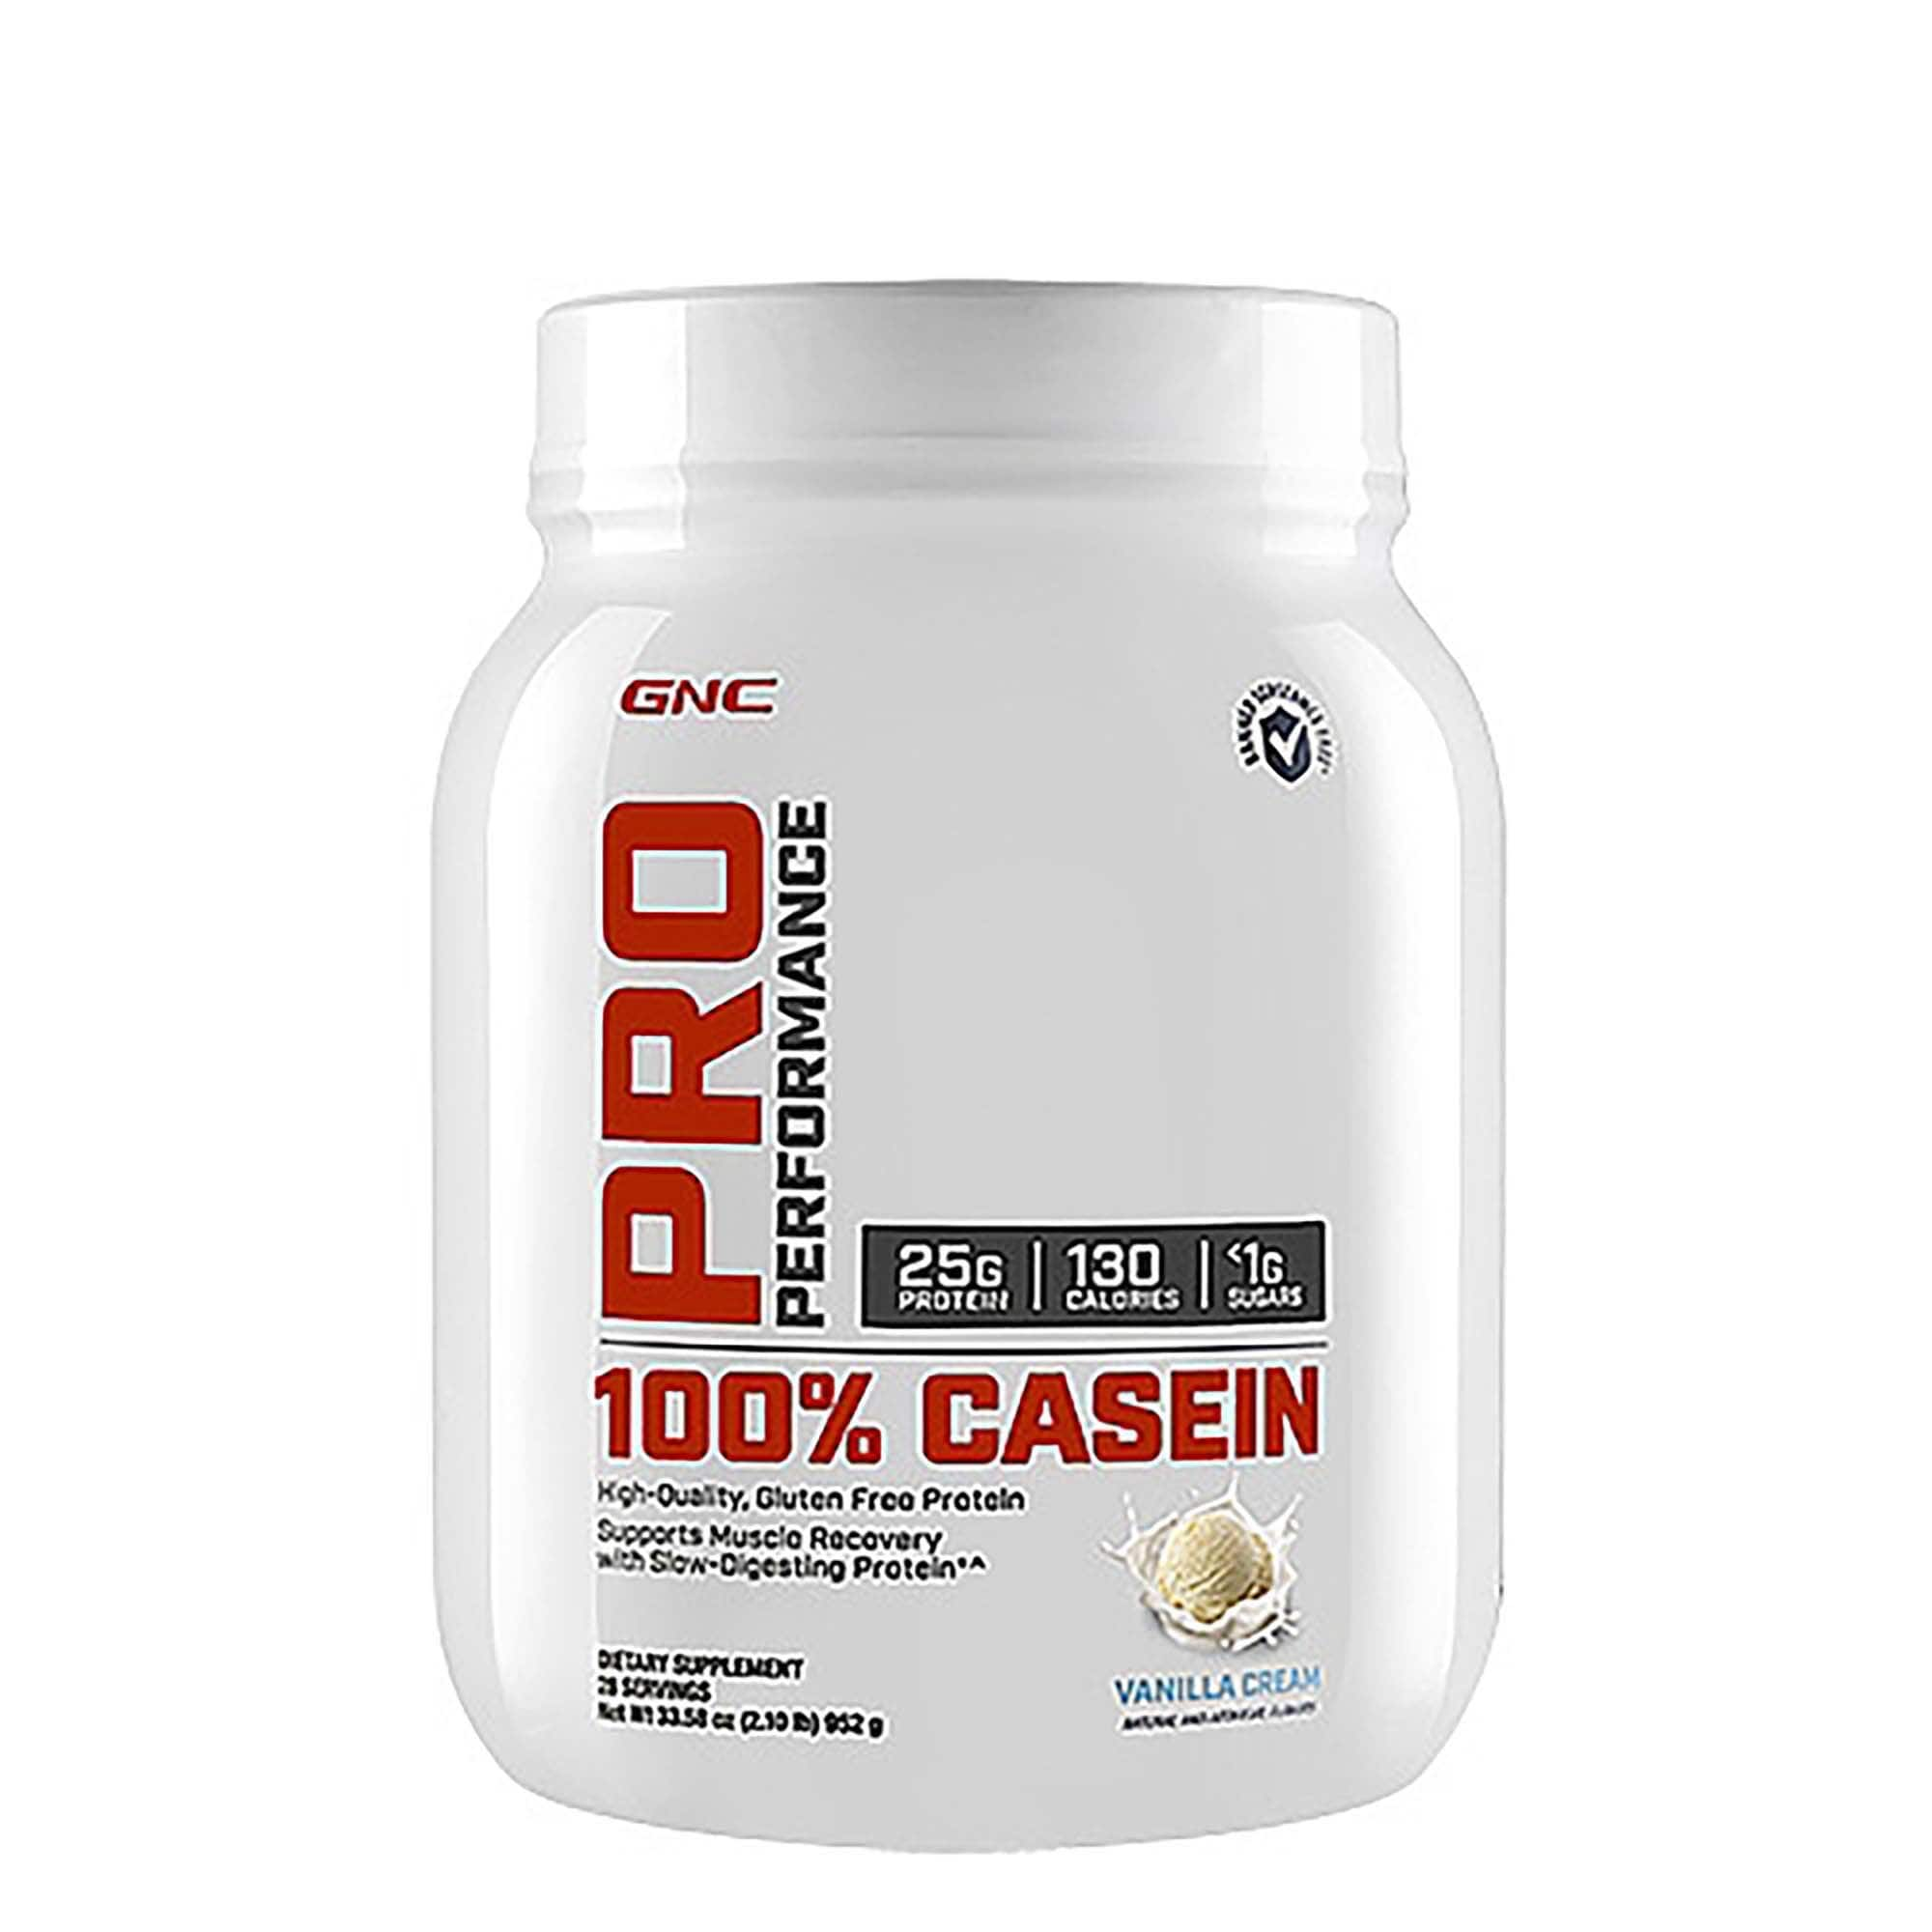 GNC Casein Protein BOGO 50% Off + Additional 15% Off + Receive $60 PayPal Credit via SD Rebate When You Buy 4 $24.12 AR AC w/s&s +Free SH